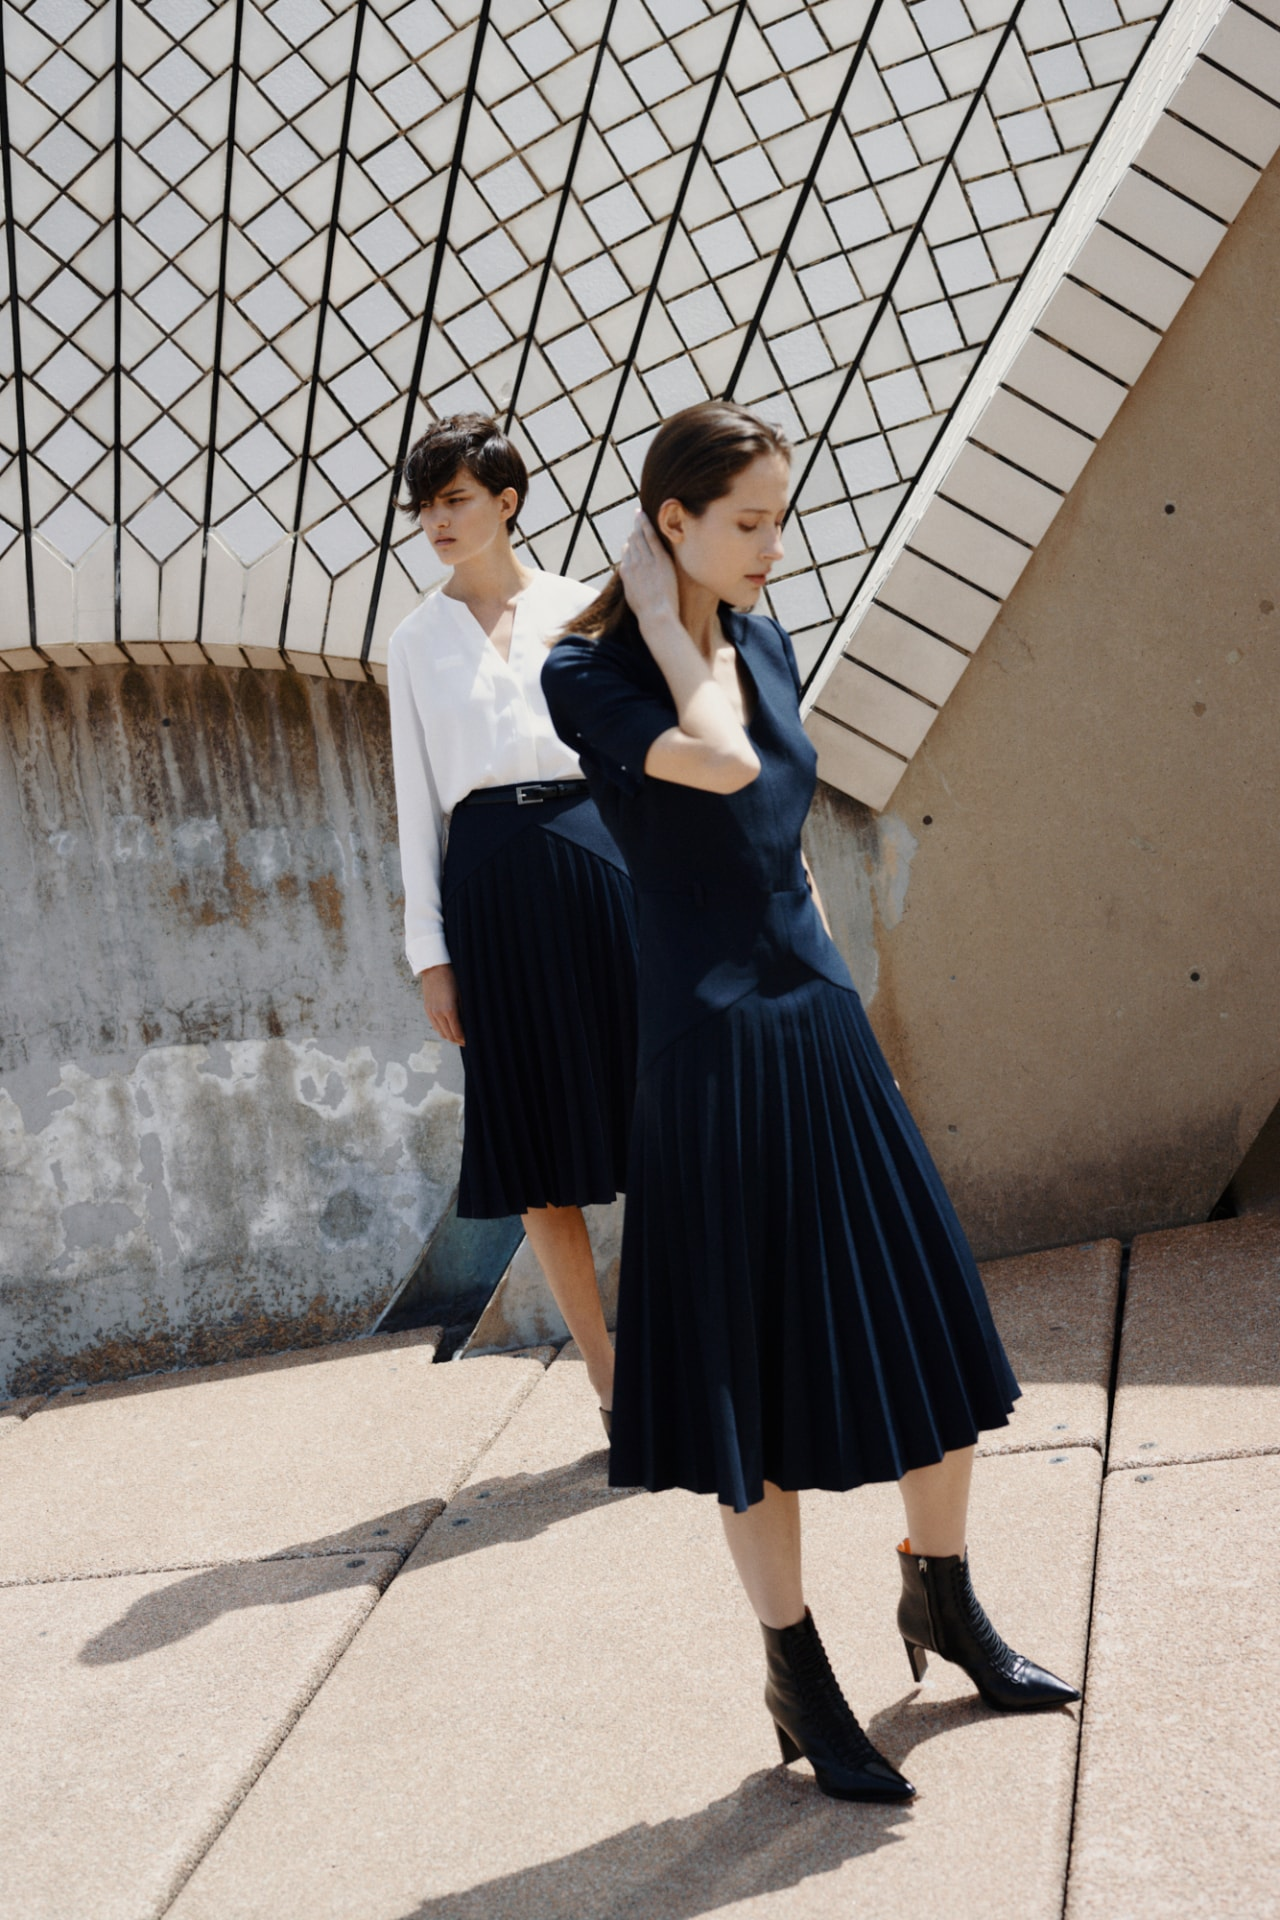 The Opera House's 45th anniversary staff uniforms designed by Dion Lee. Image credit: Supplied